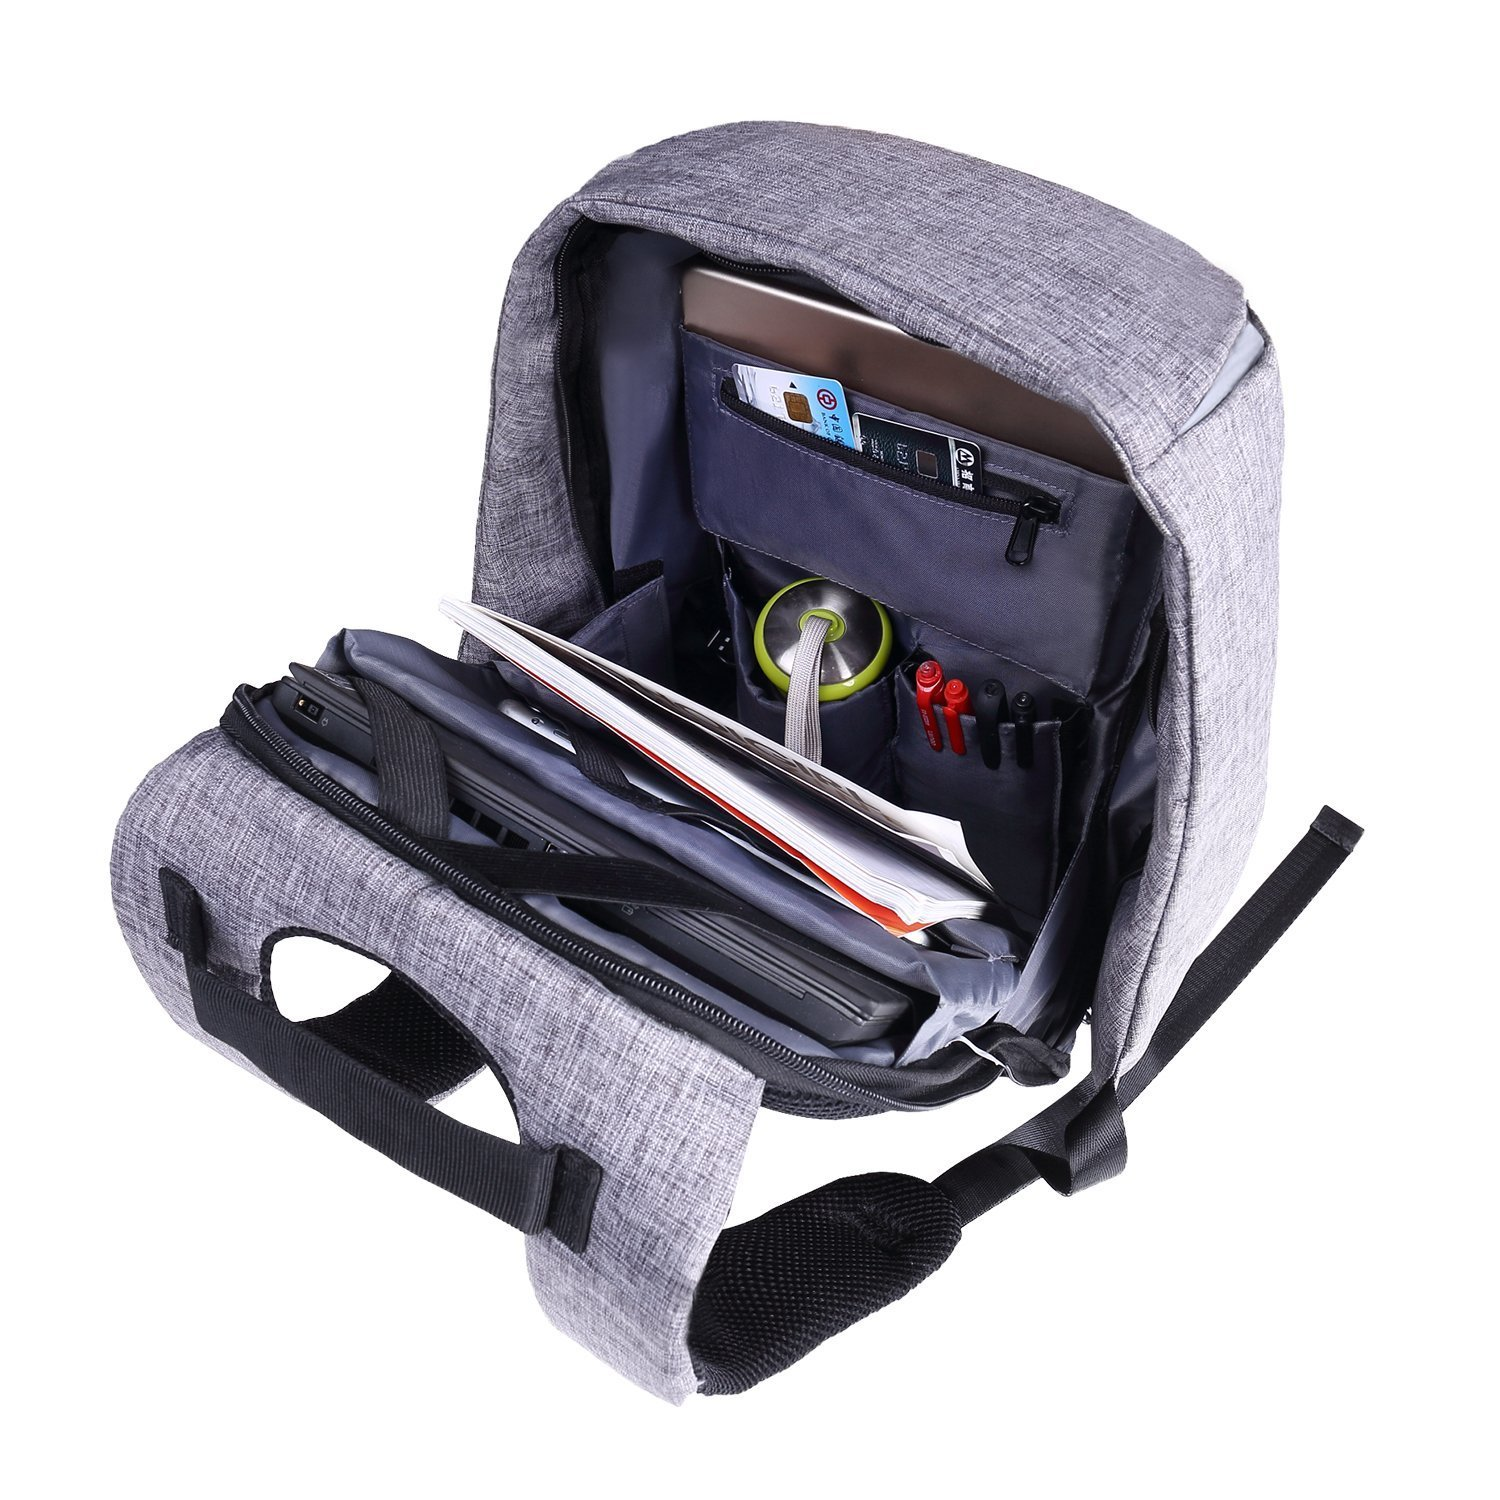 Laptop Backpack business anti-theft waterproof travel computer backpack with USB charging port college school computer bag for women & men fits 15.6 Inch Laptop and Notebook - Grey by Langus (Image #7)